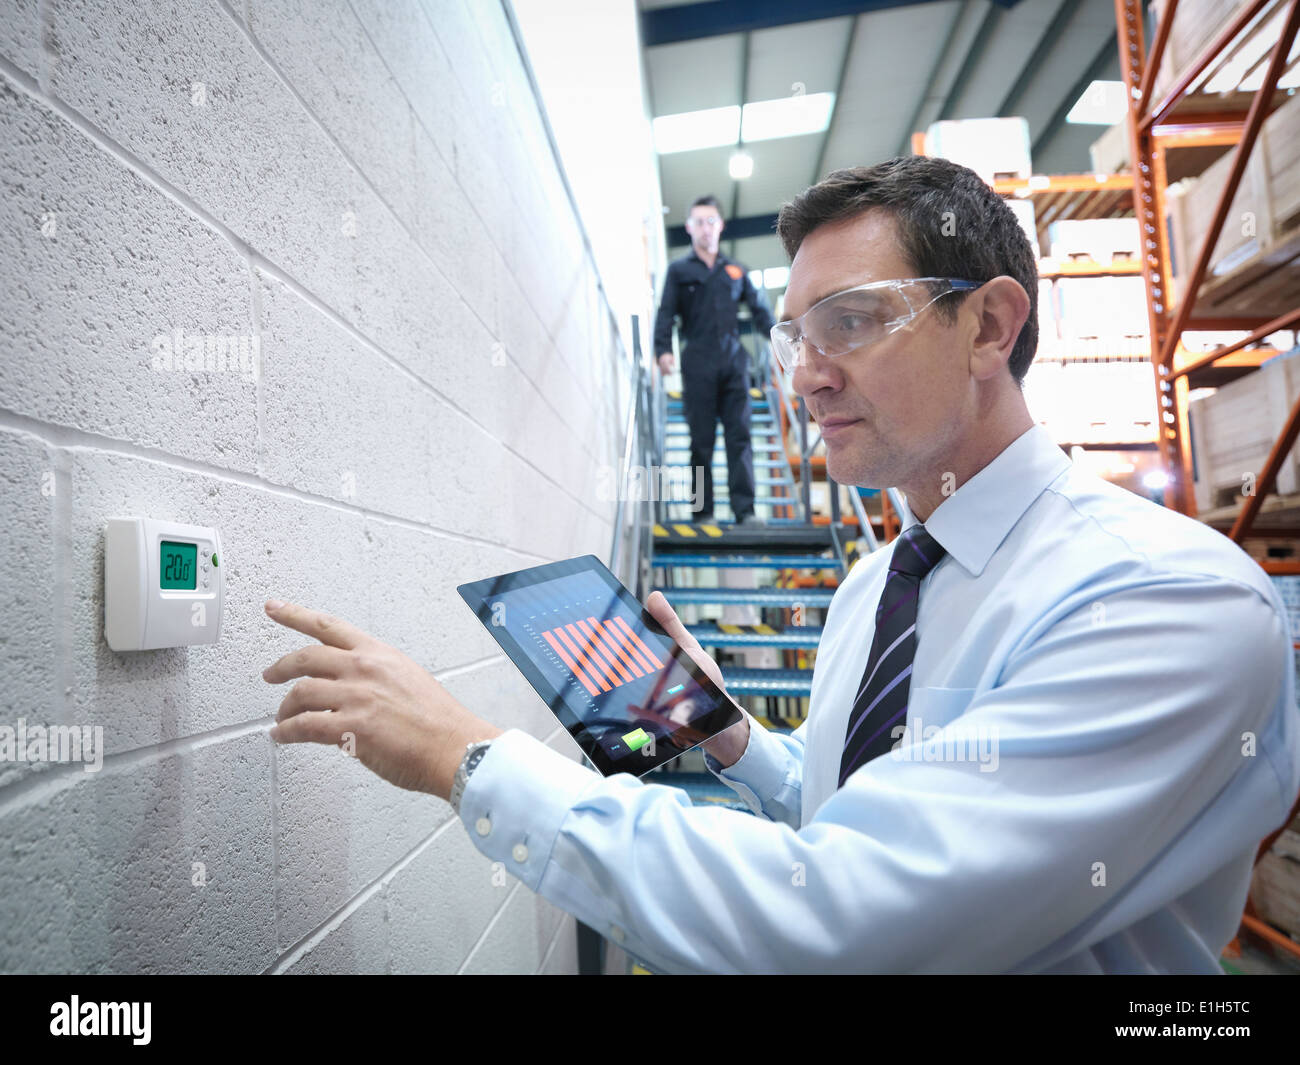 Office worker checking thermostat dans factory Photo Stock